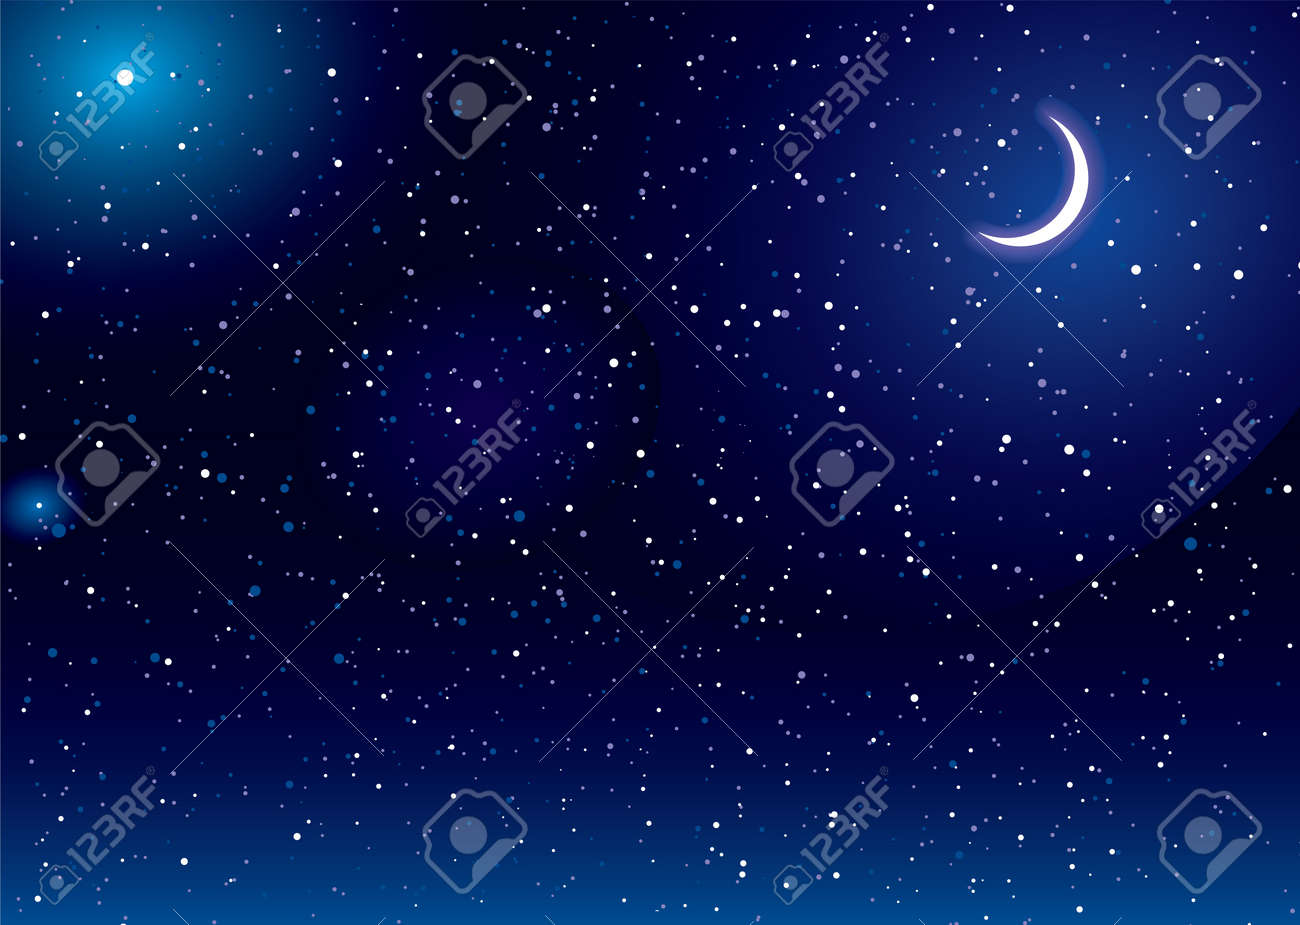 Space scene with stars and moon ideal desktop background - 15702443